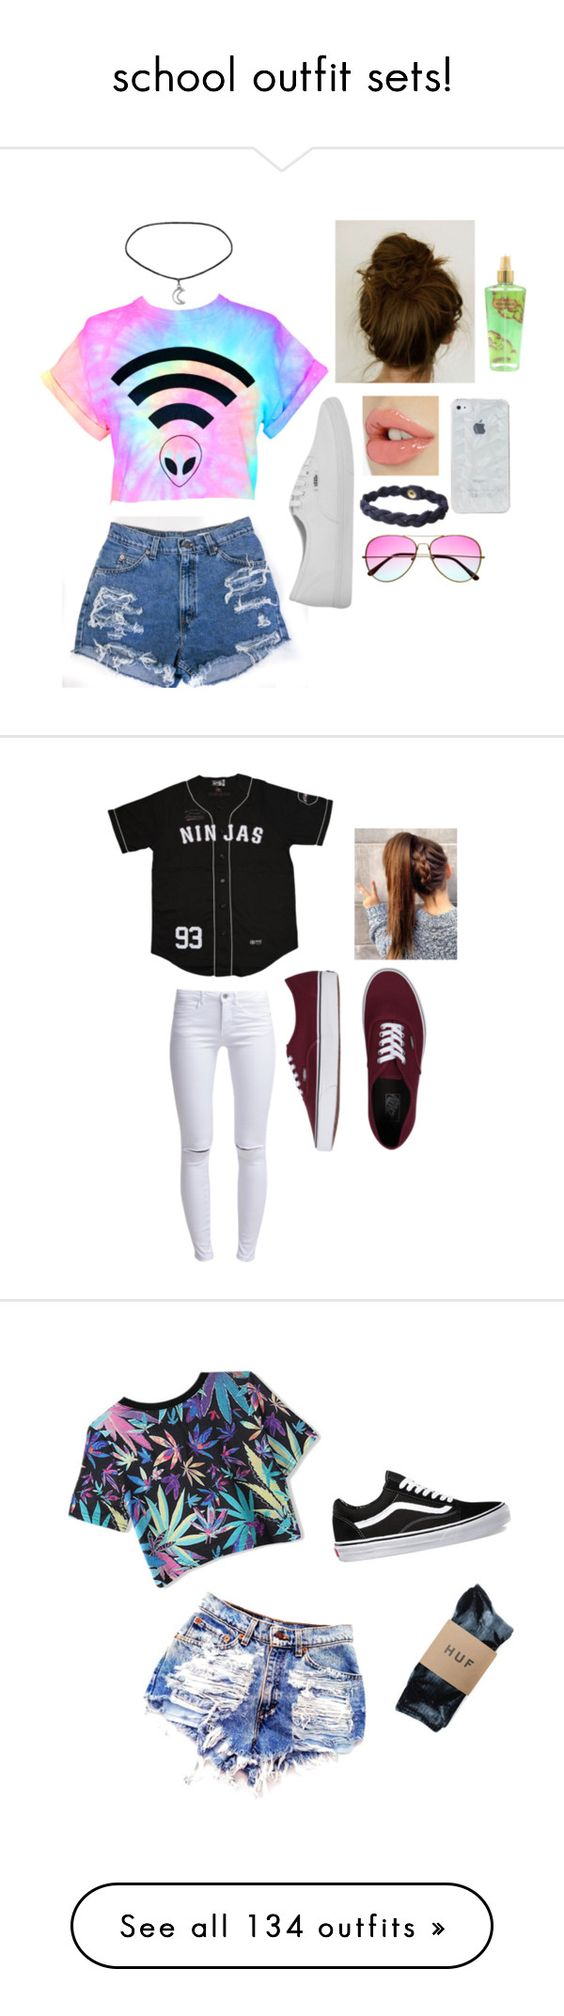 """""""school outfit sets!"""" by thatgirldiana ❤ liked on Polyvore"""